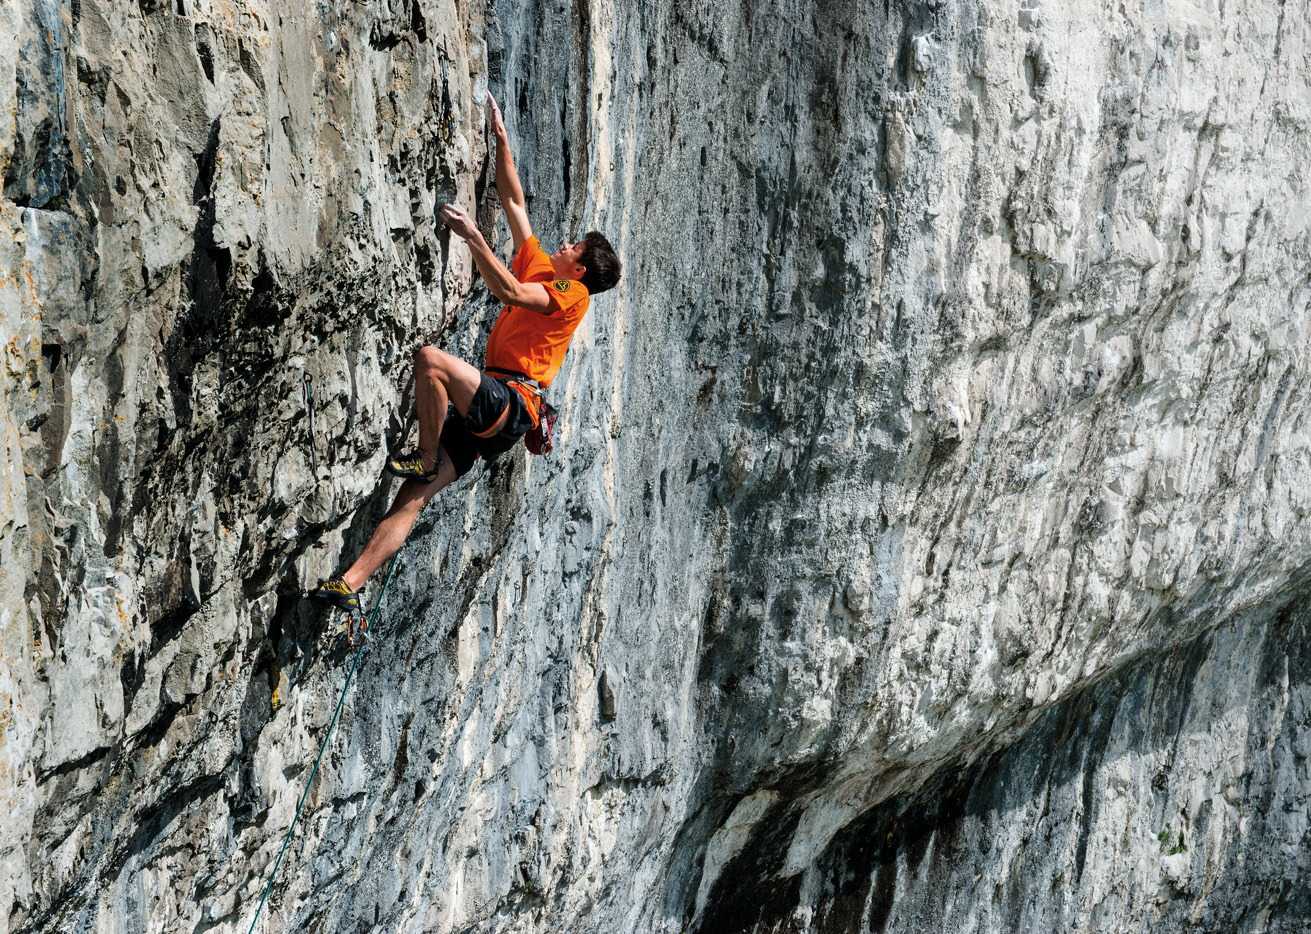 Buster Martin repeating Bat Route (F8c), aged 16, in 2013. Photo: Keith Sharples